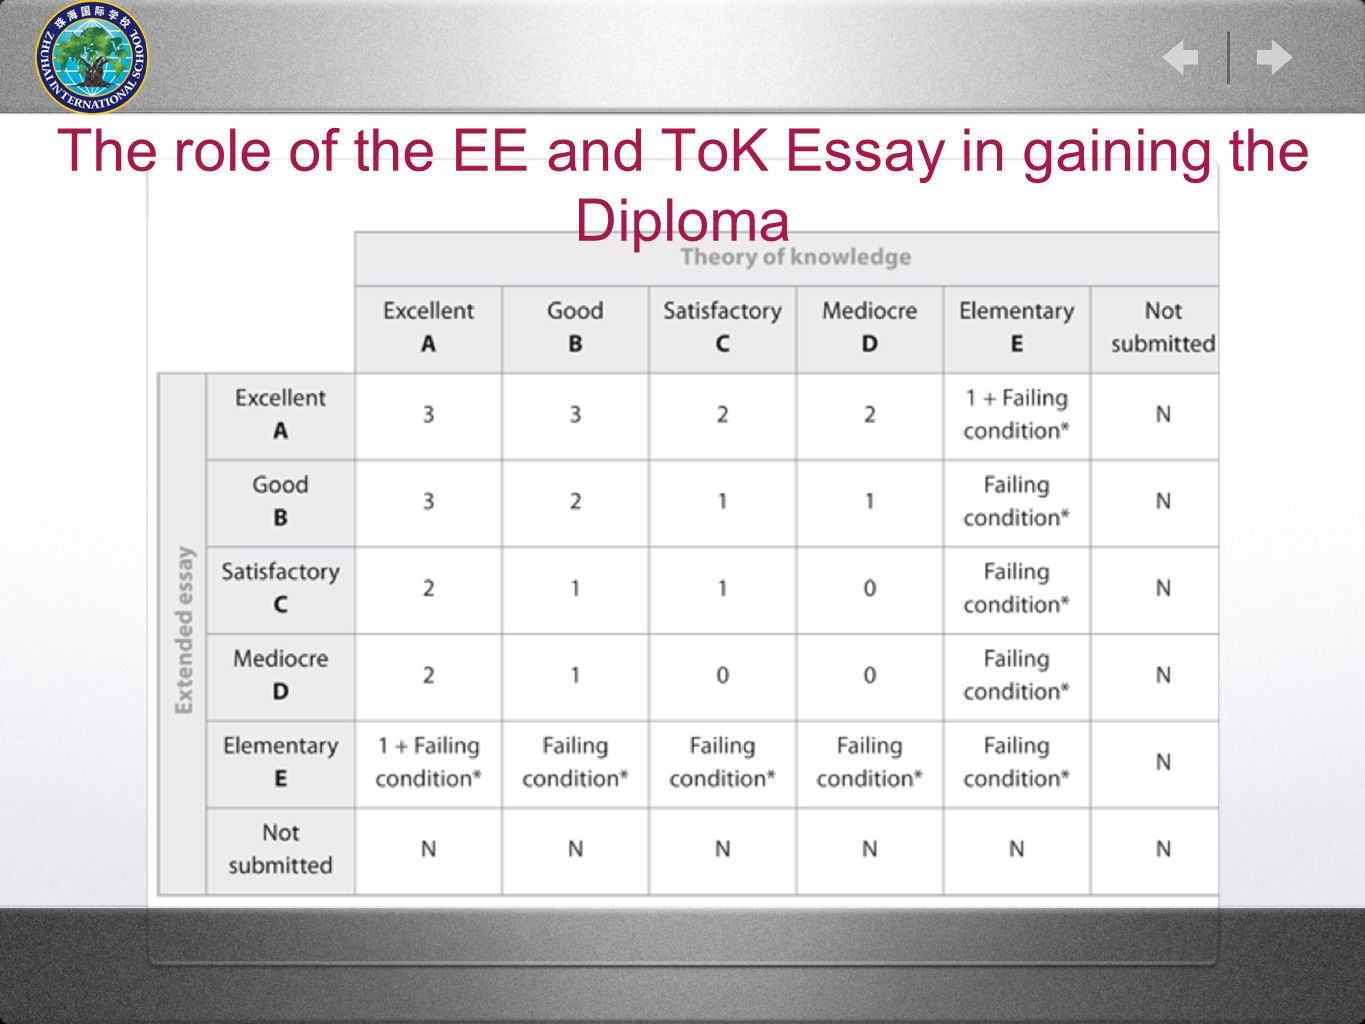 tok essay topics 2015 Tok essays 2015 help tok essays 2015 help how to write a essay conclusion tok essays 2015 help research papers on winston churchill economic research paperhelp with tok essay 2015 help with tok essay 2015 research paper on adhd tok essays 2015 help formal research proposal example engineering economy homeworktok essays 2015 help tok essays 2015 help tok essay help 2015.